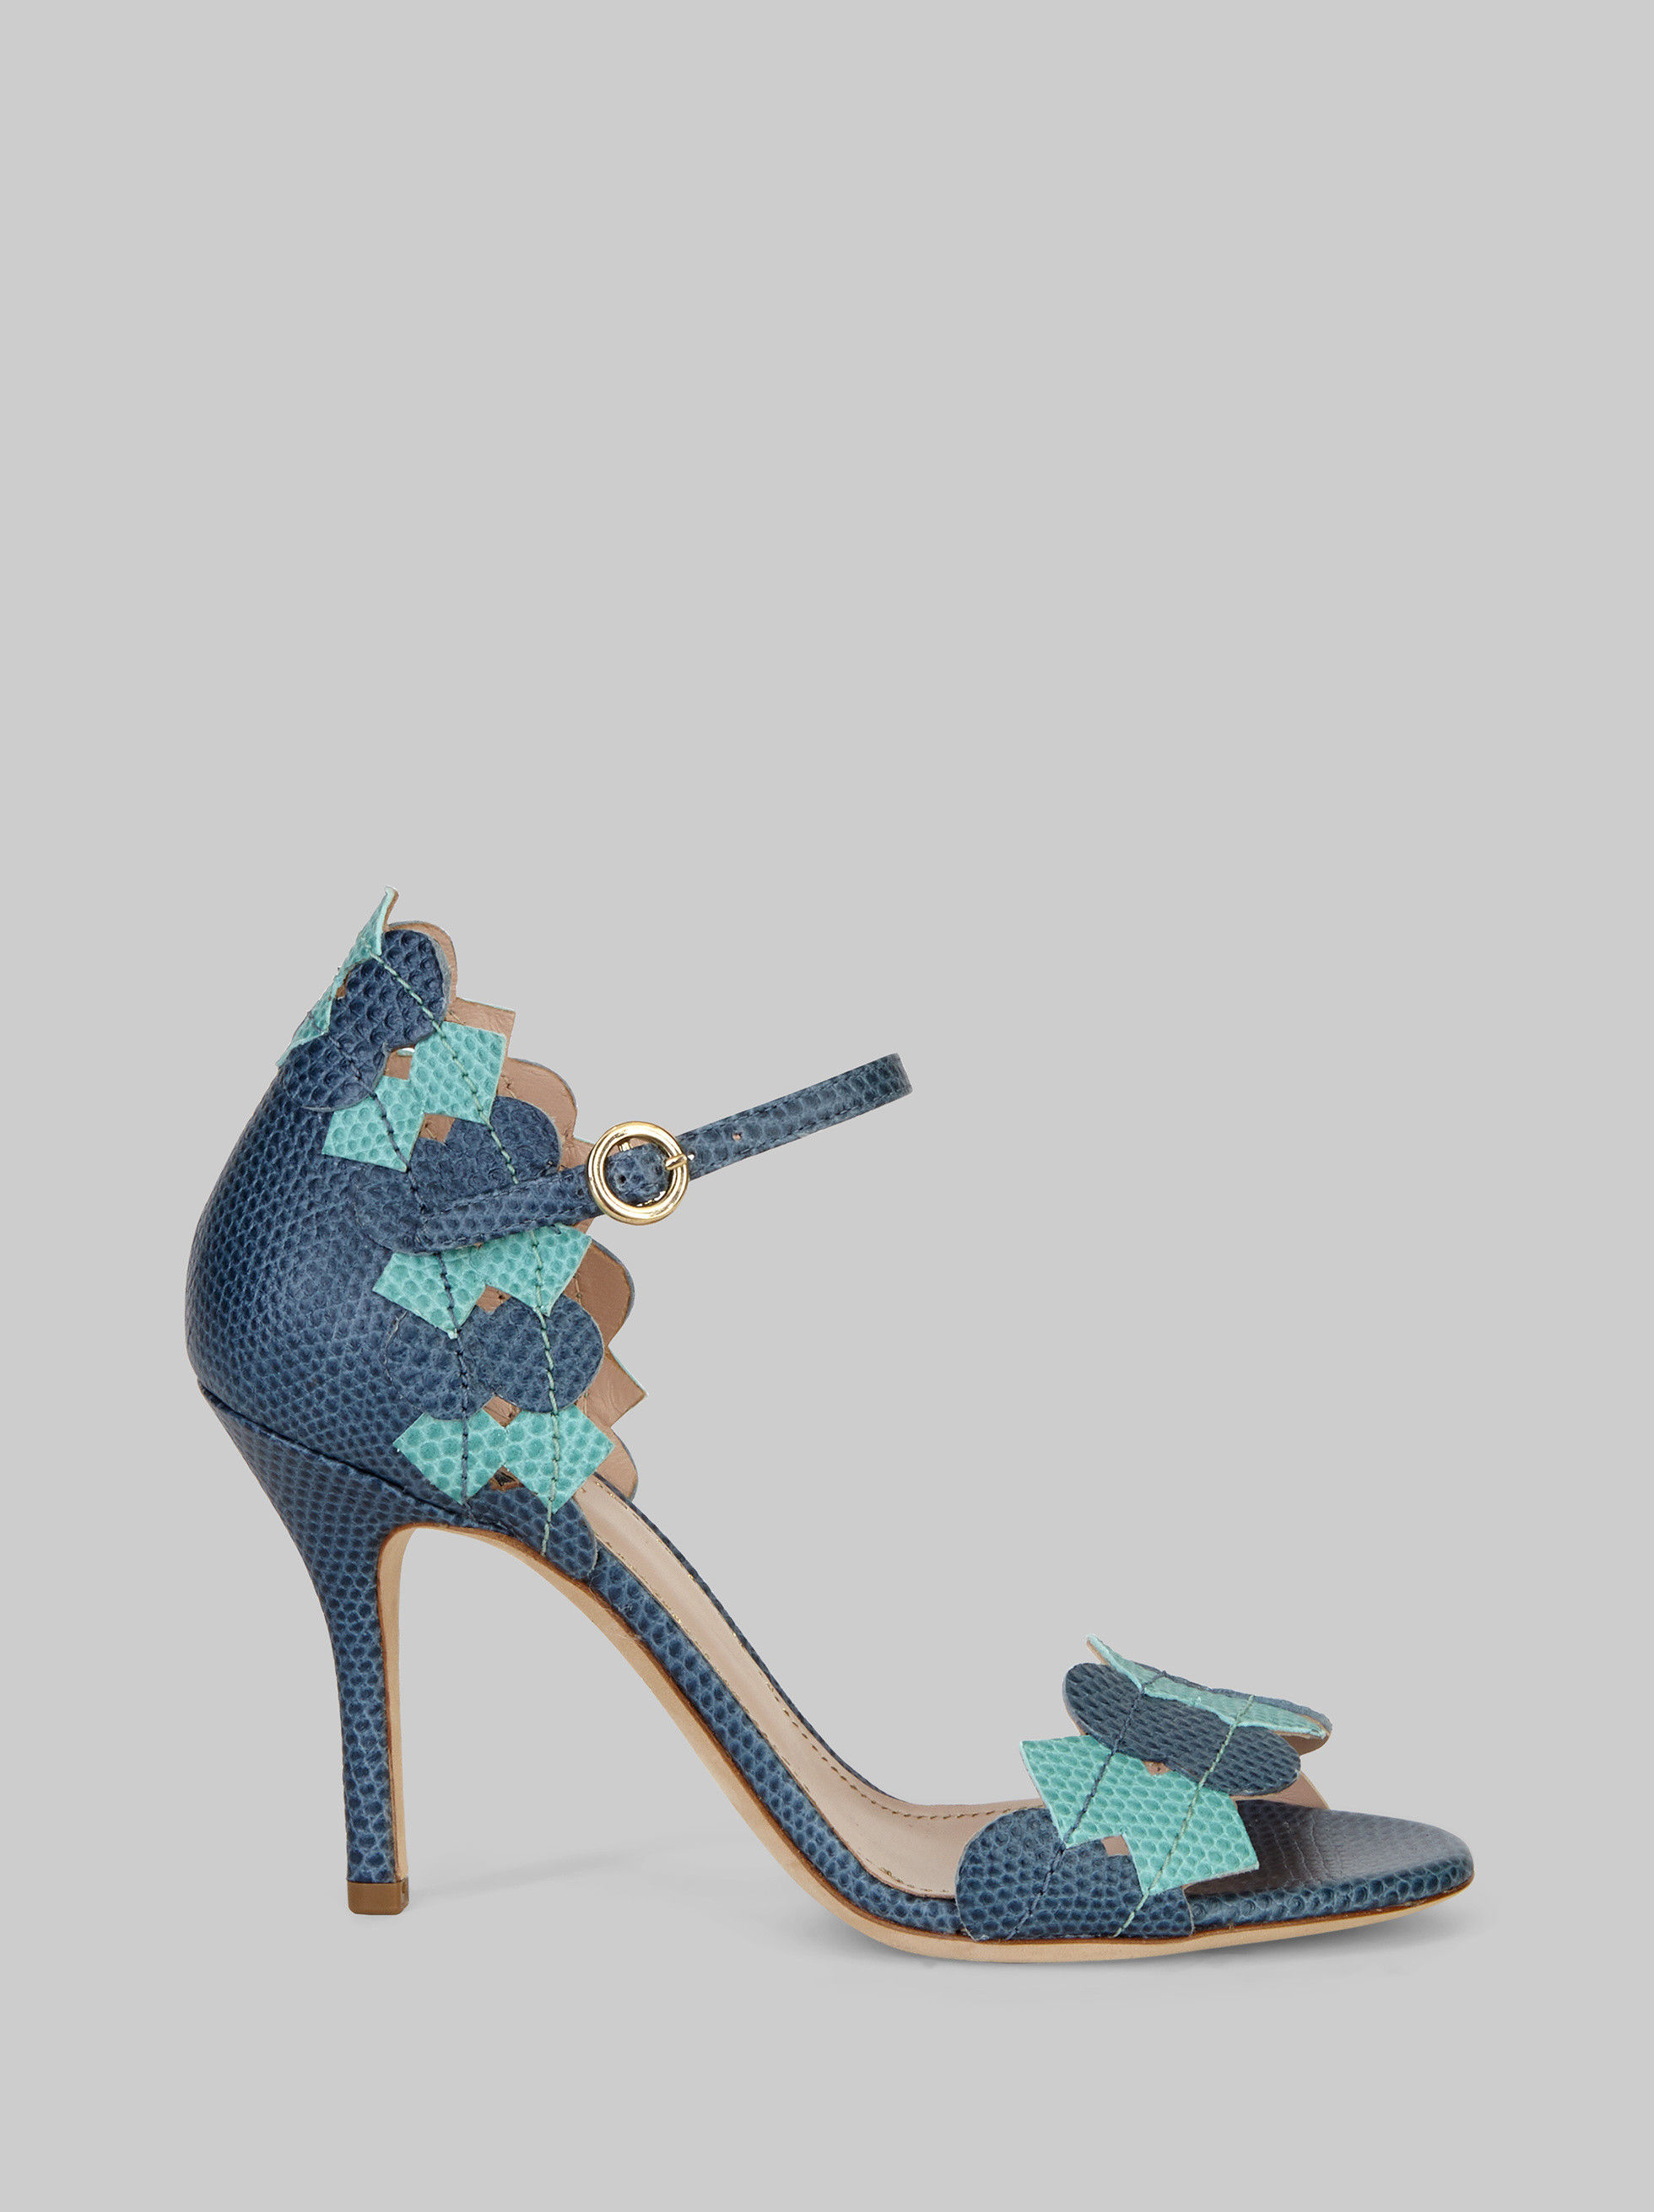 LIZARD PRINT SANDALS WITH GEOMETRIC PATTERNS